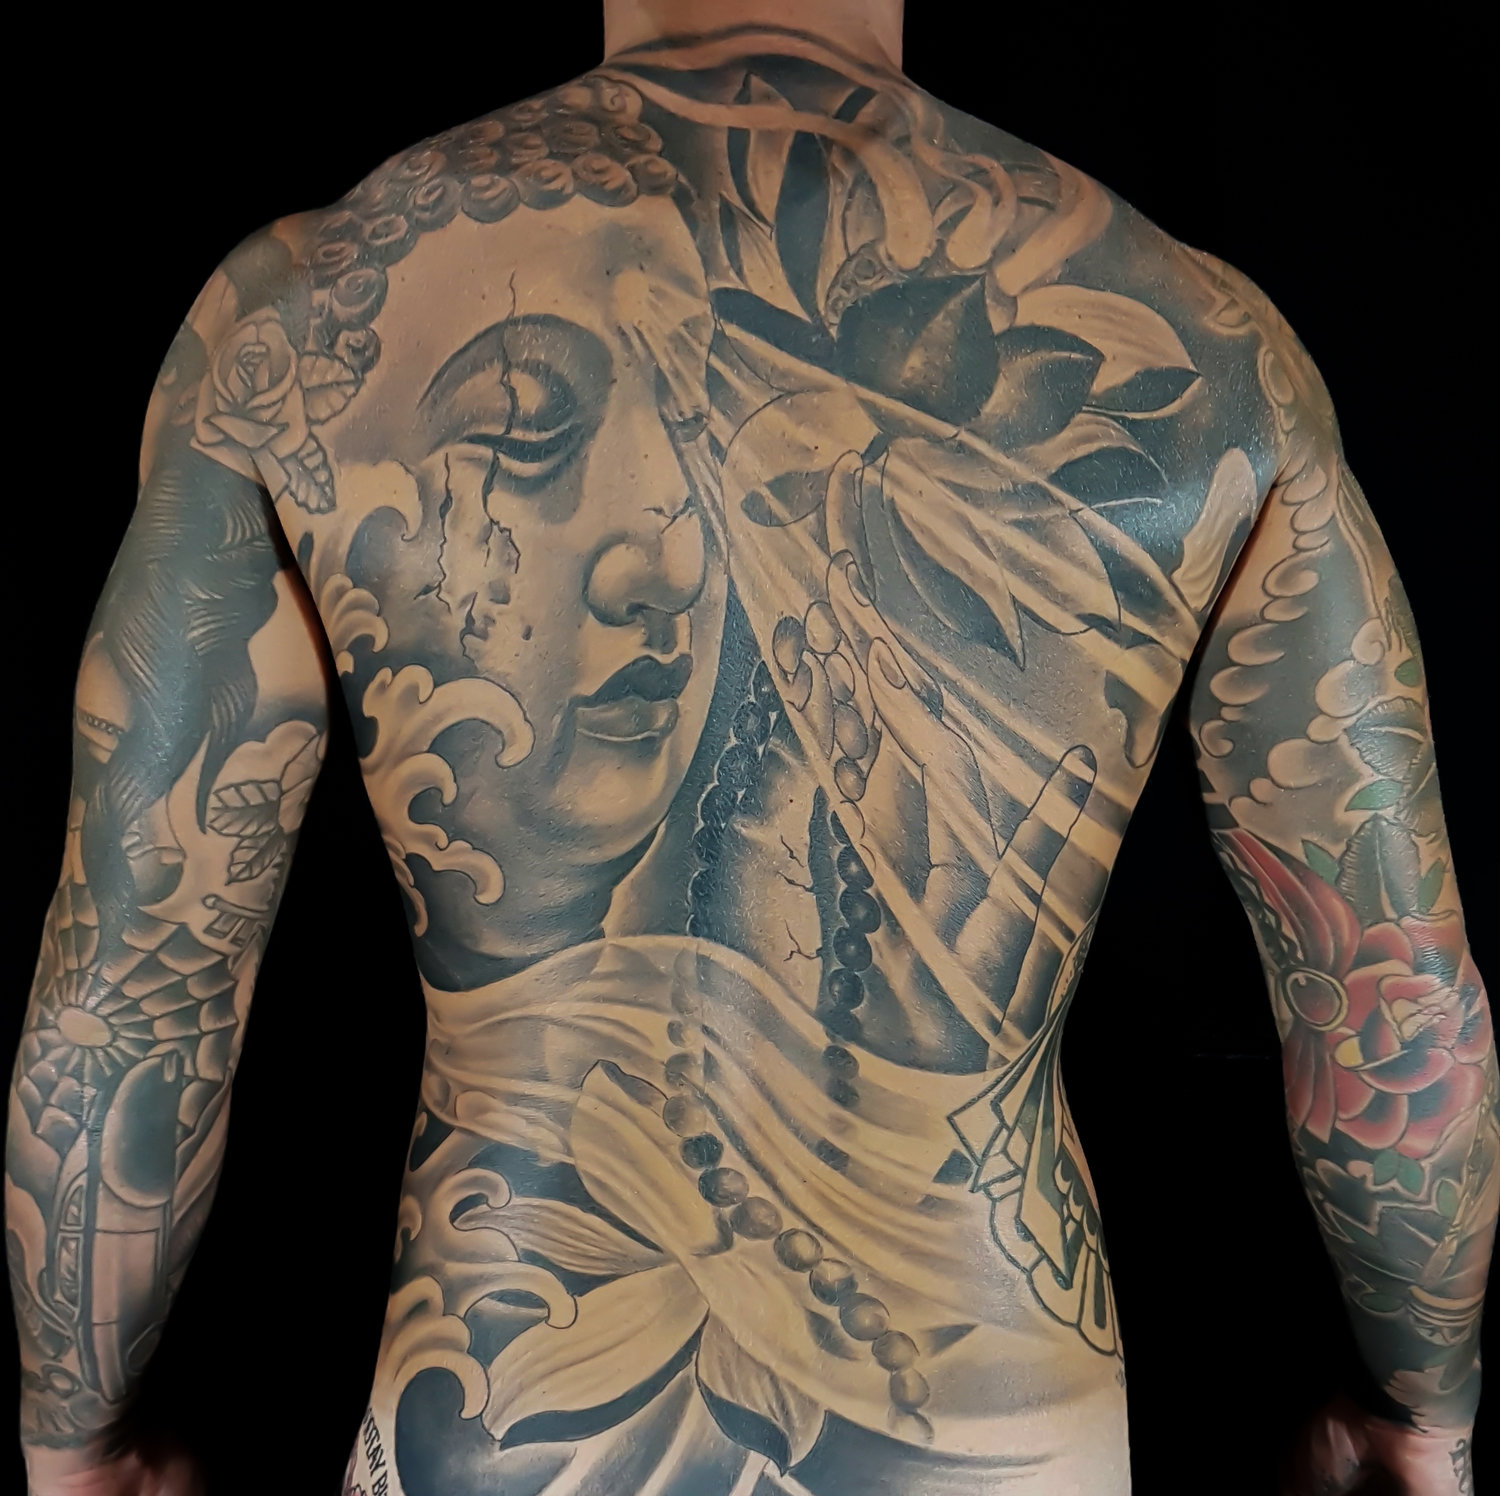 Best Tattoo Studio Bali Best Tattoo Studio And Artists In Kuta Bali